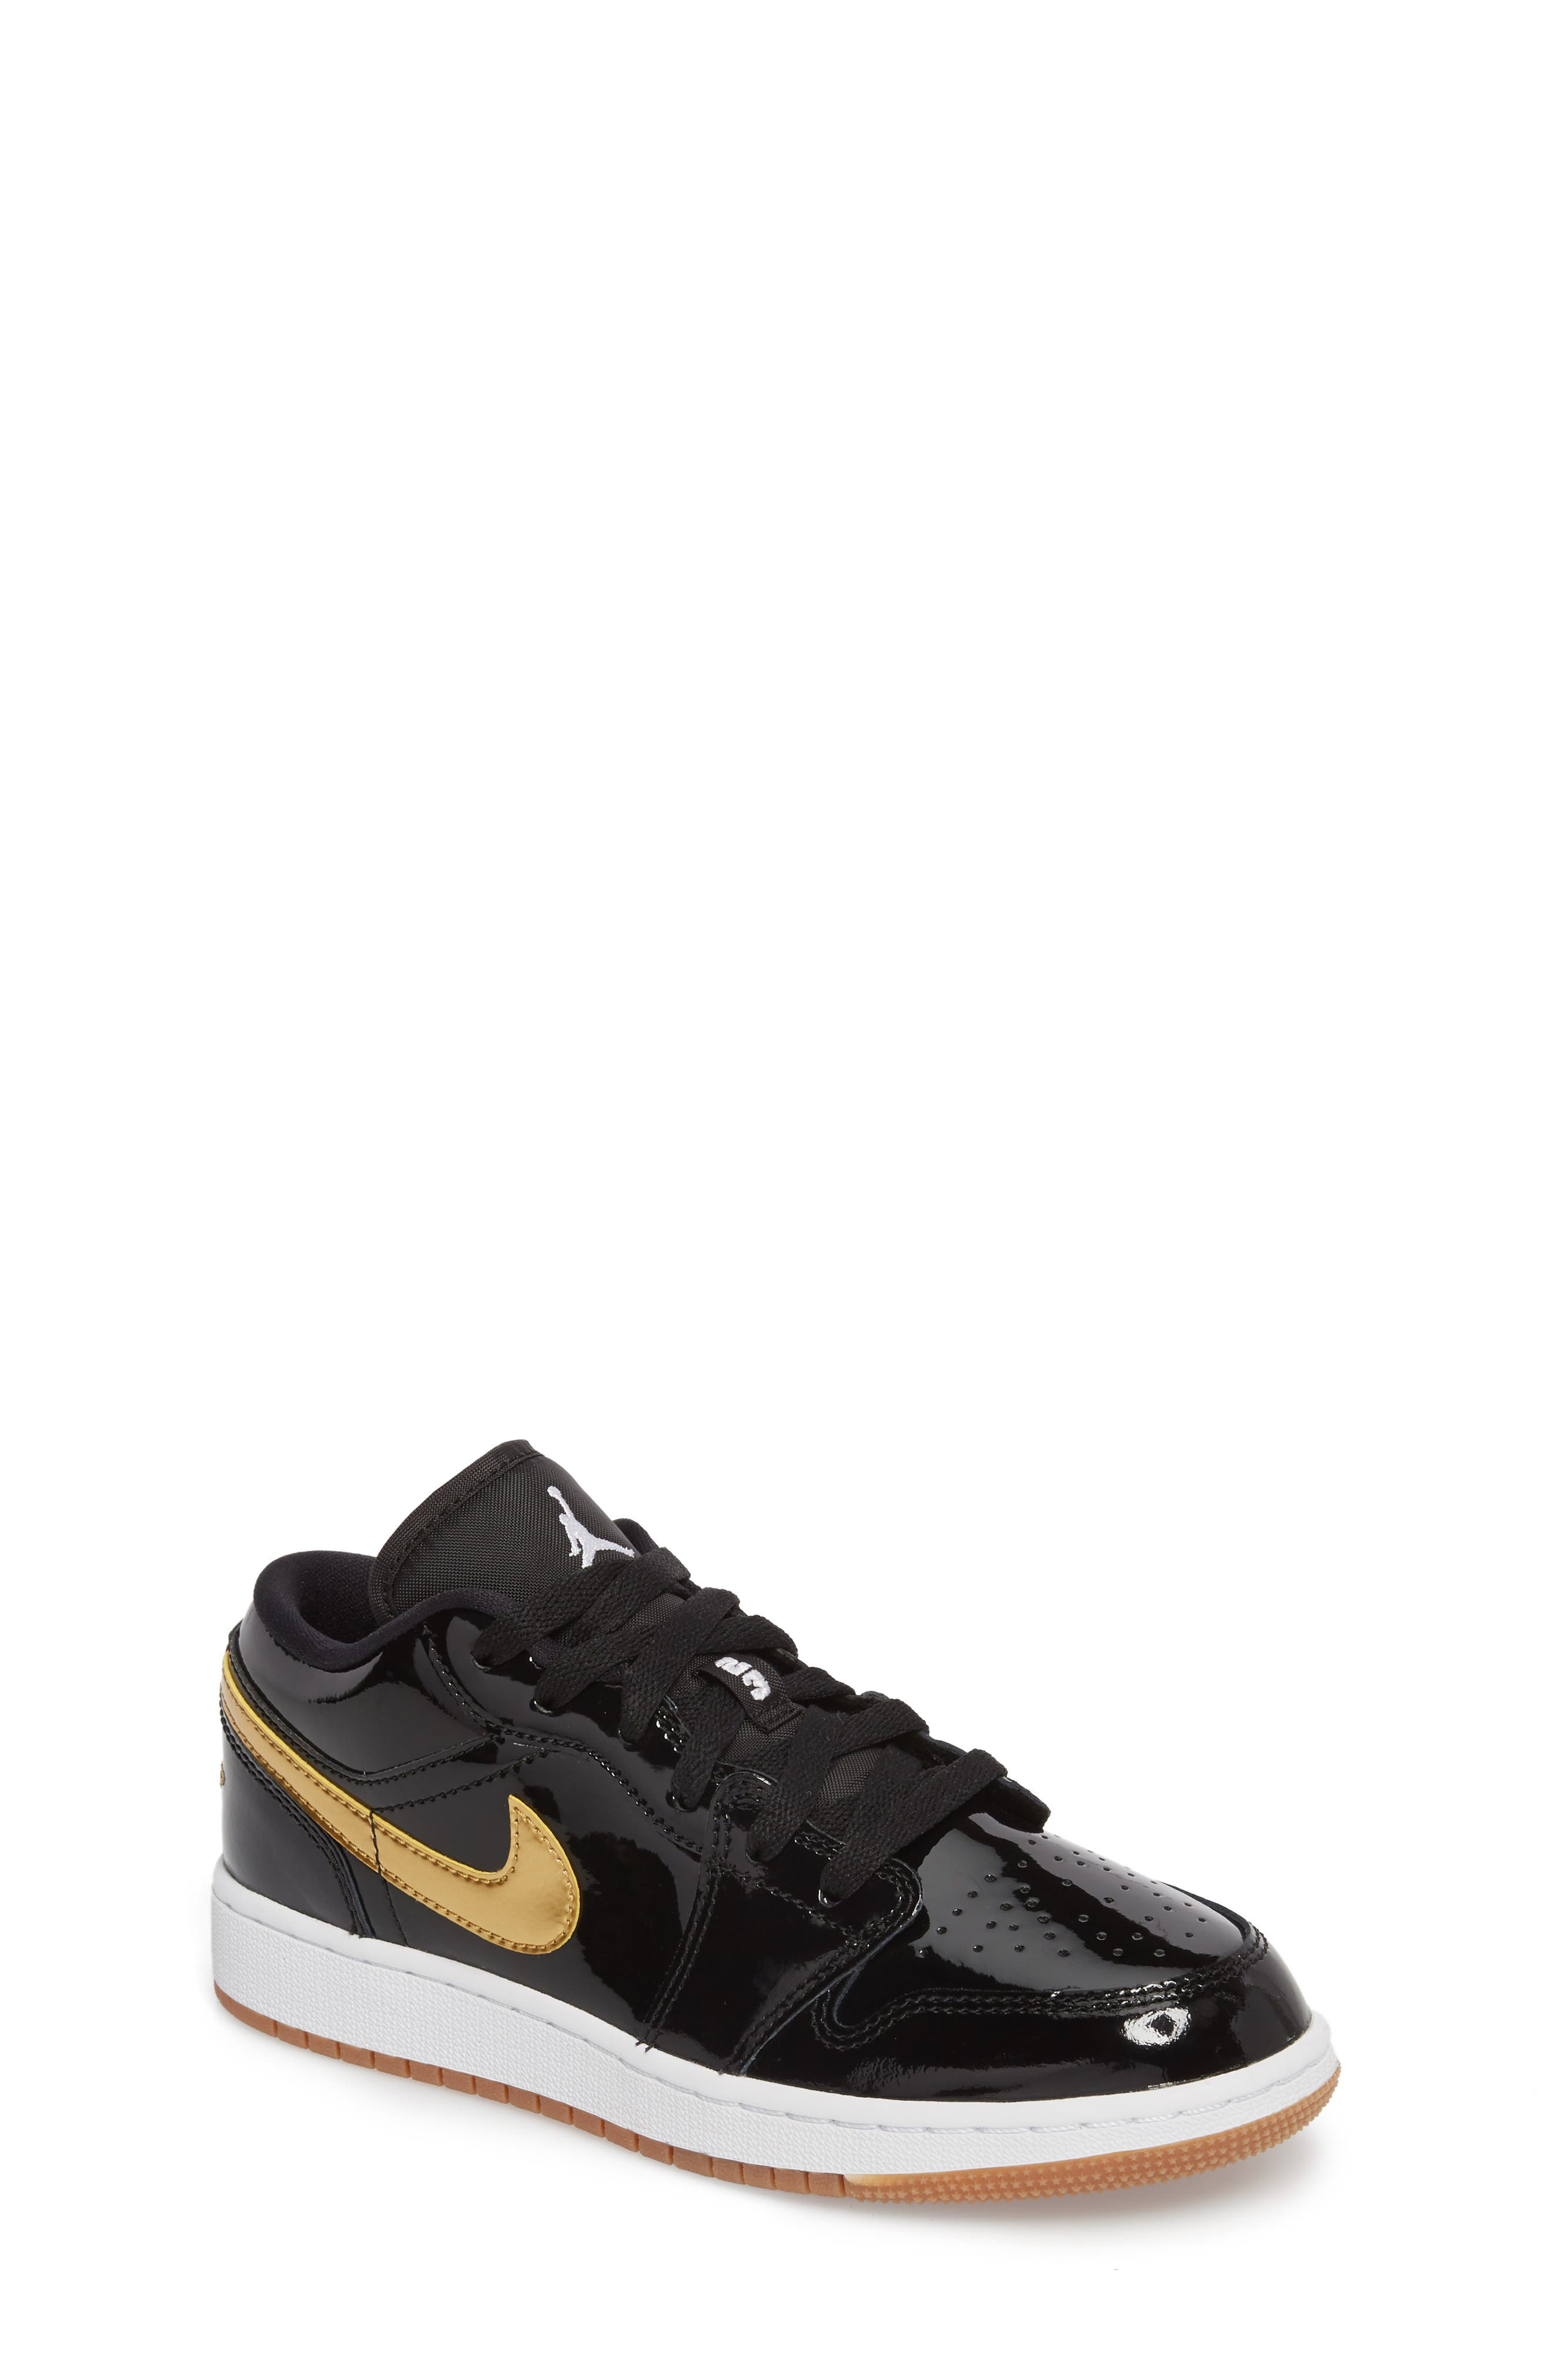 Nike 'Jordan 1 Low' Basketball Shoe,                         Main,                         color,